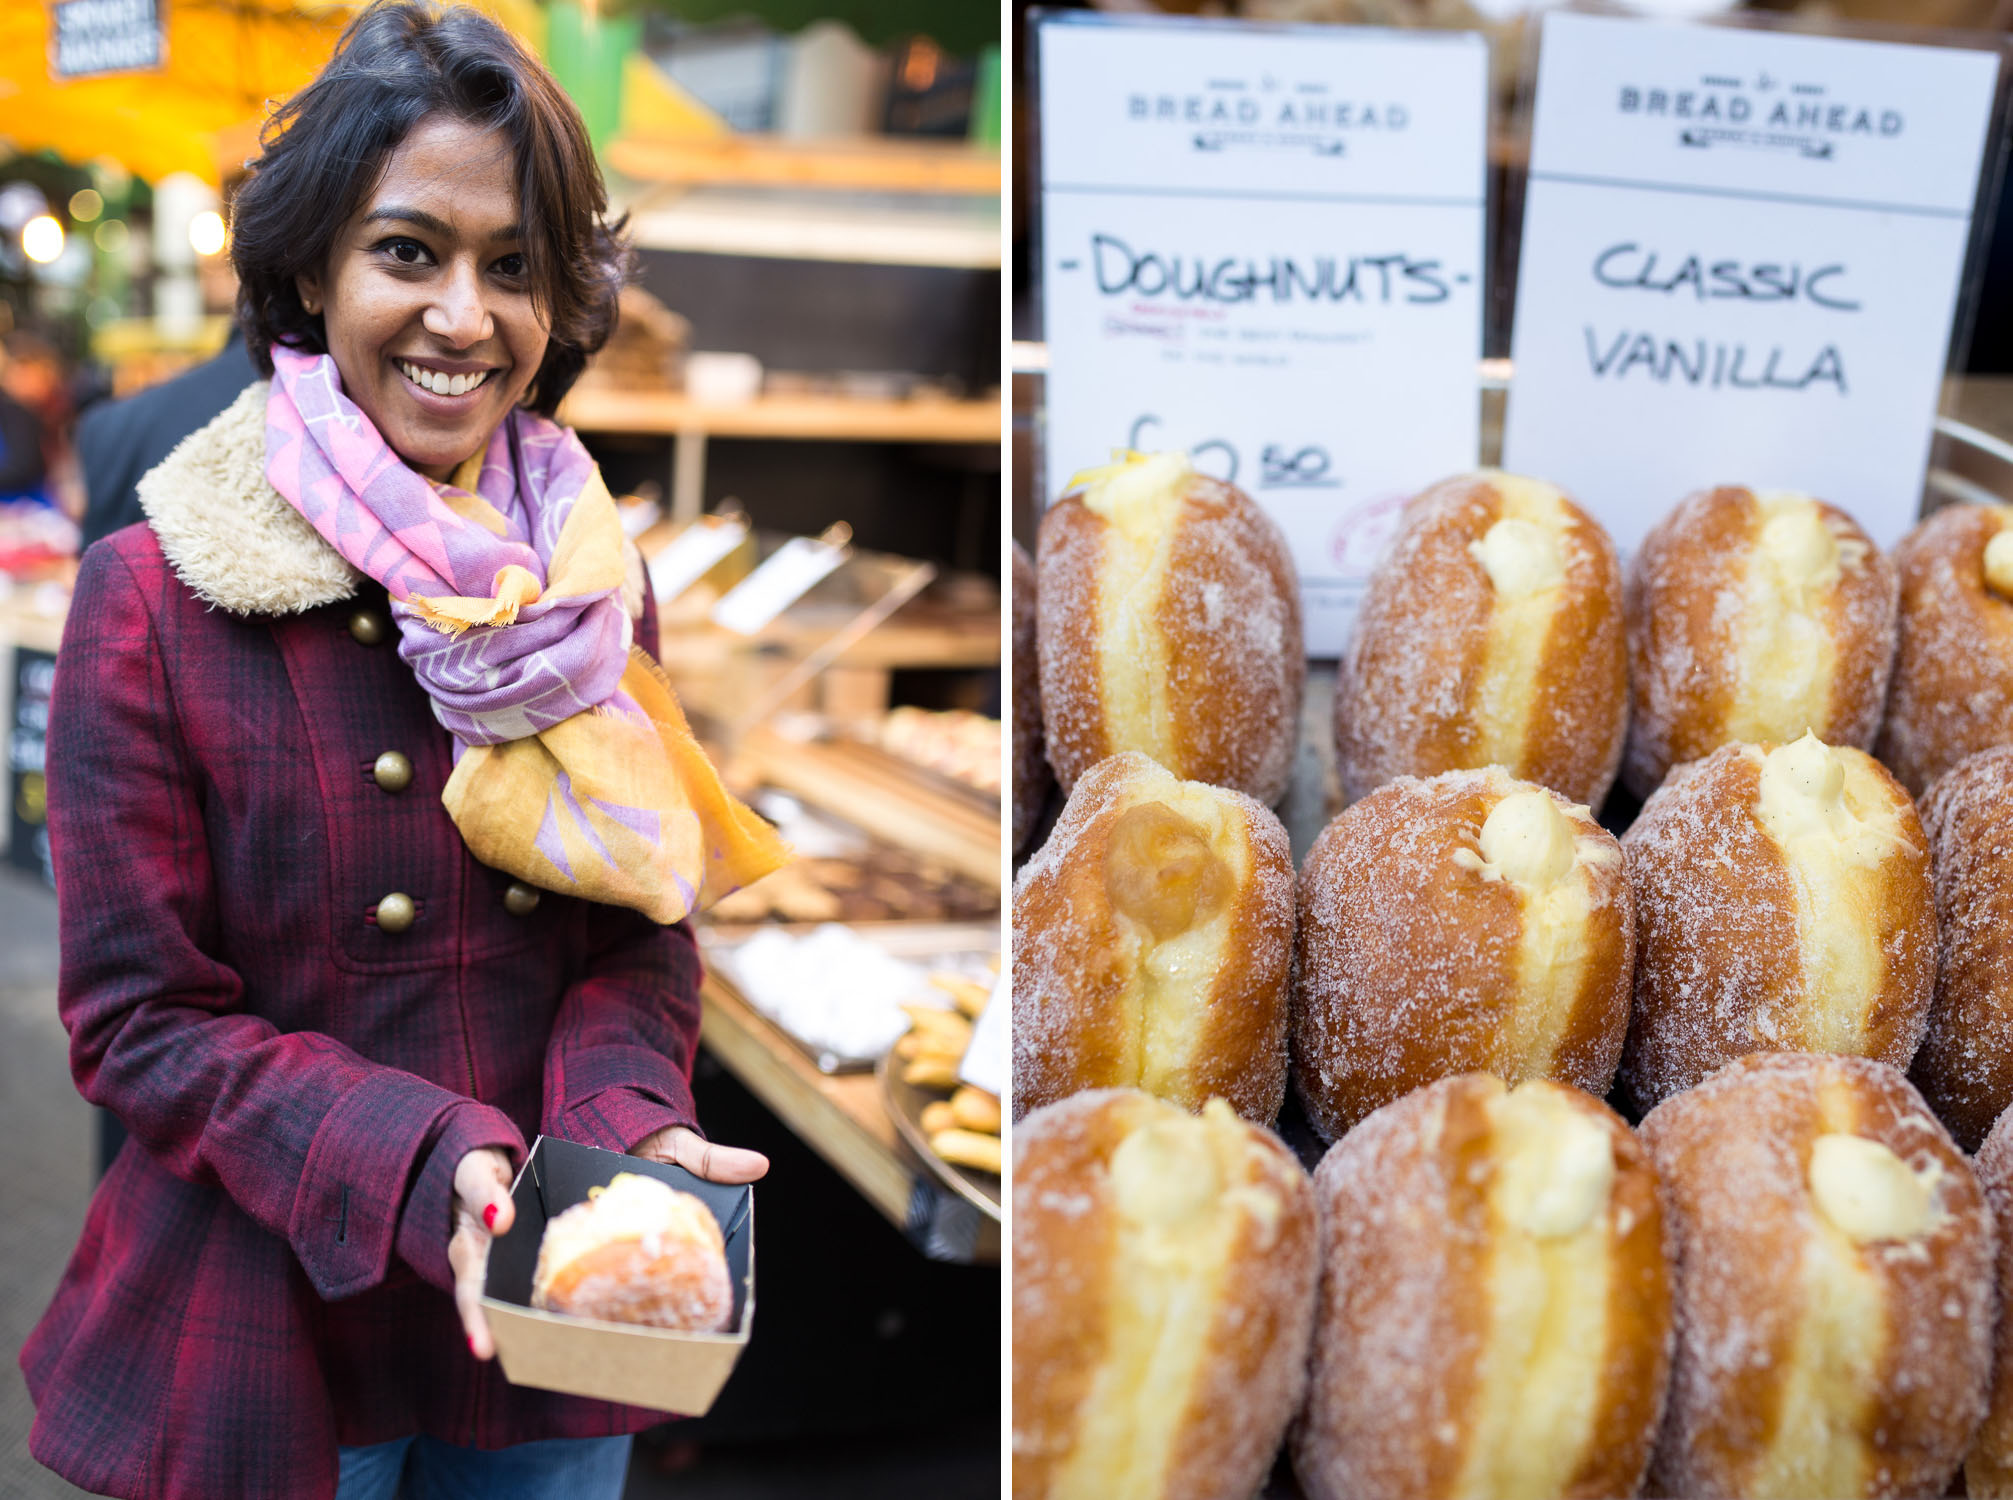 Borough-Market-Bread-Ahead-Doughnuts